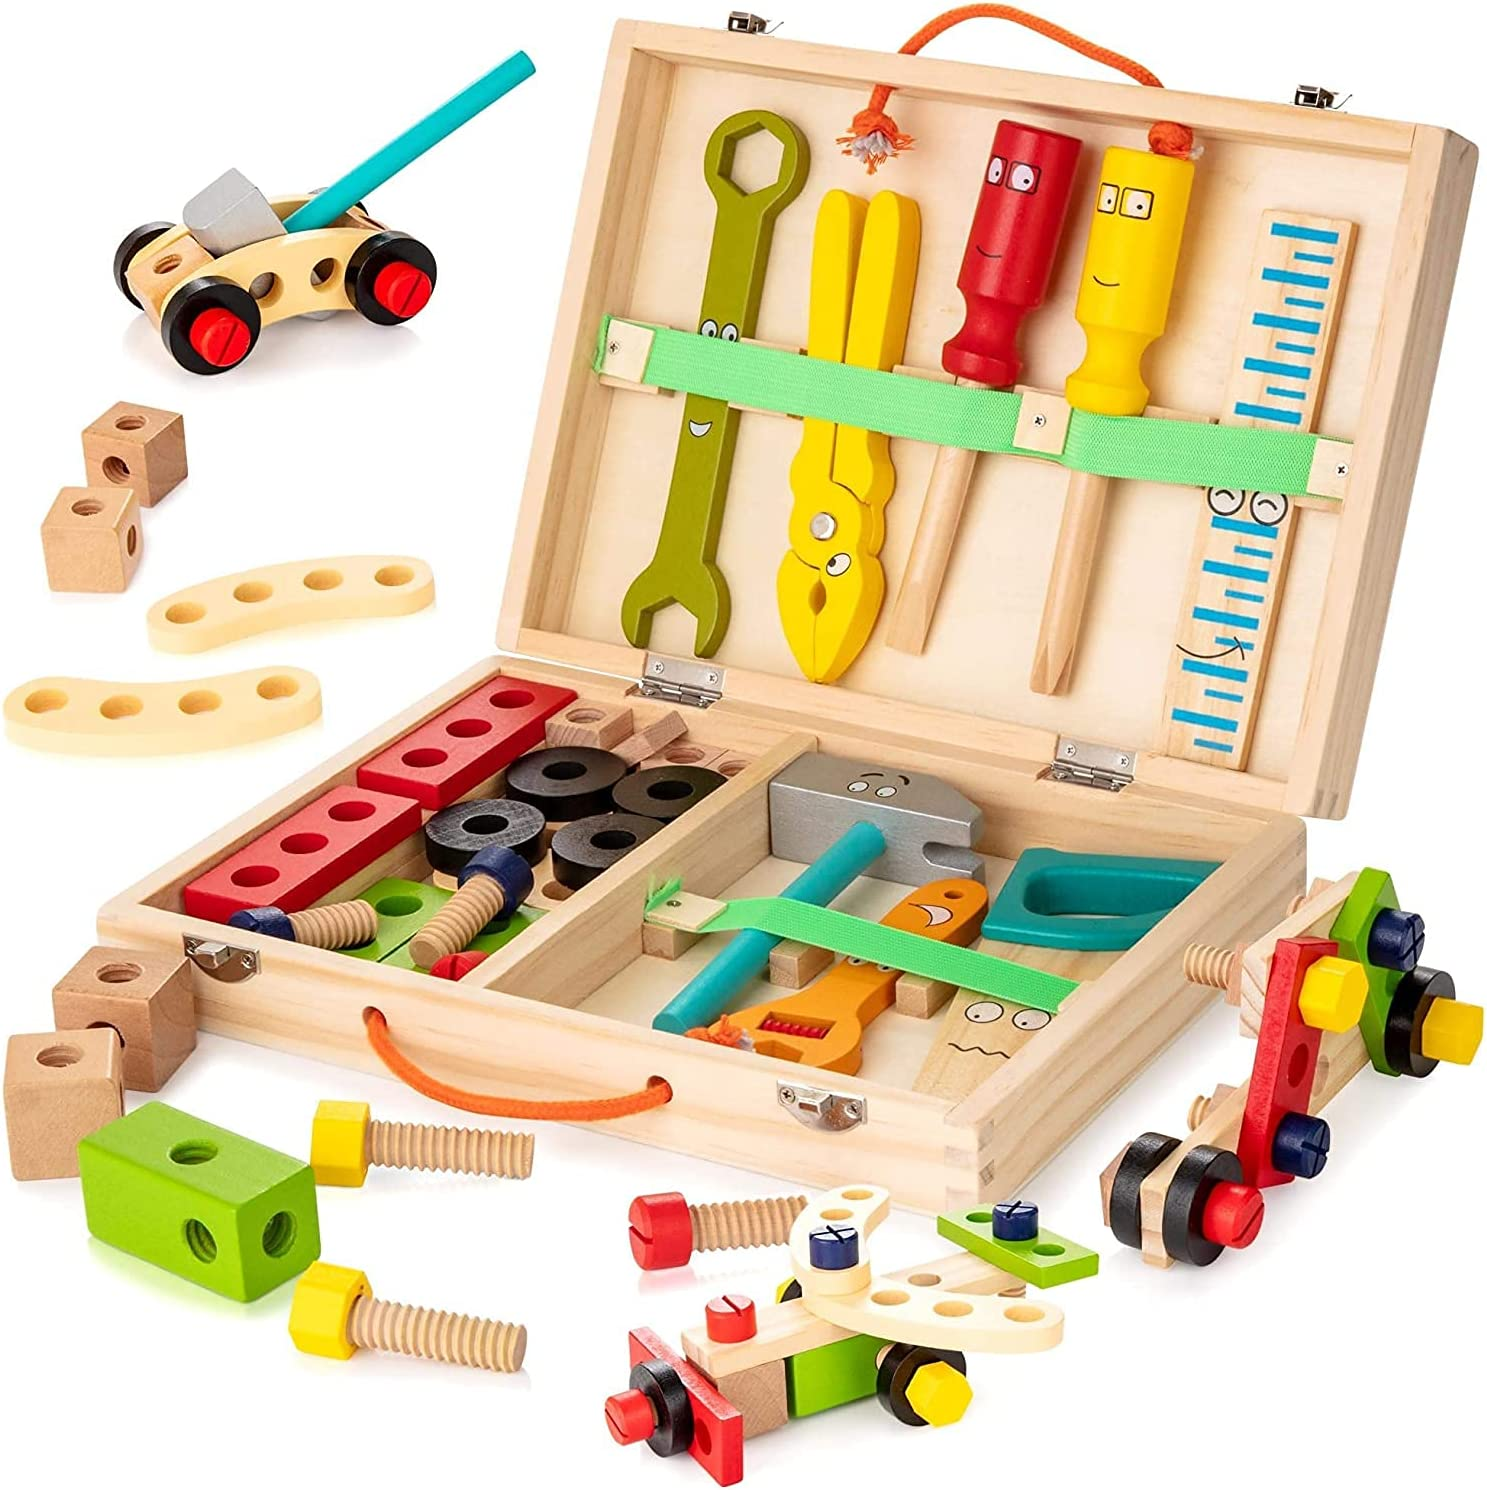 Joydom Kids Tool Set Wooden Box Challenge the lowest price of Japan ☆ with Colorful Tools Ranking TOP15